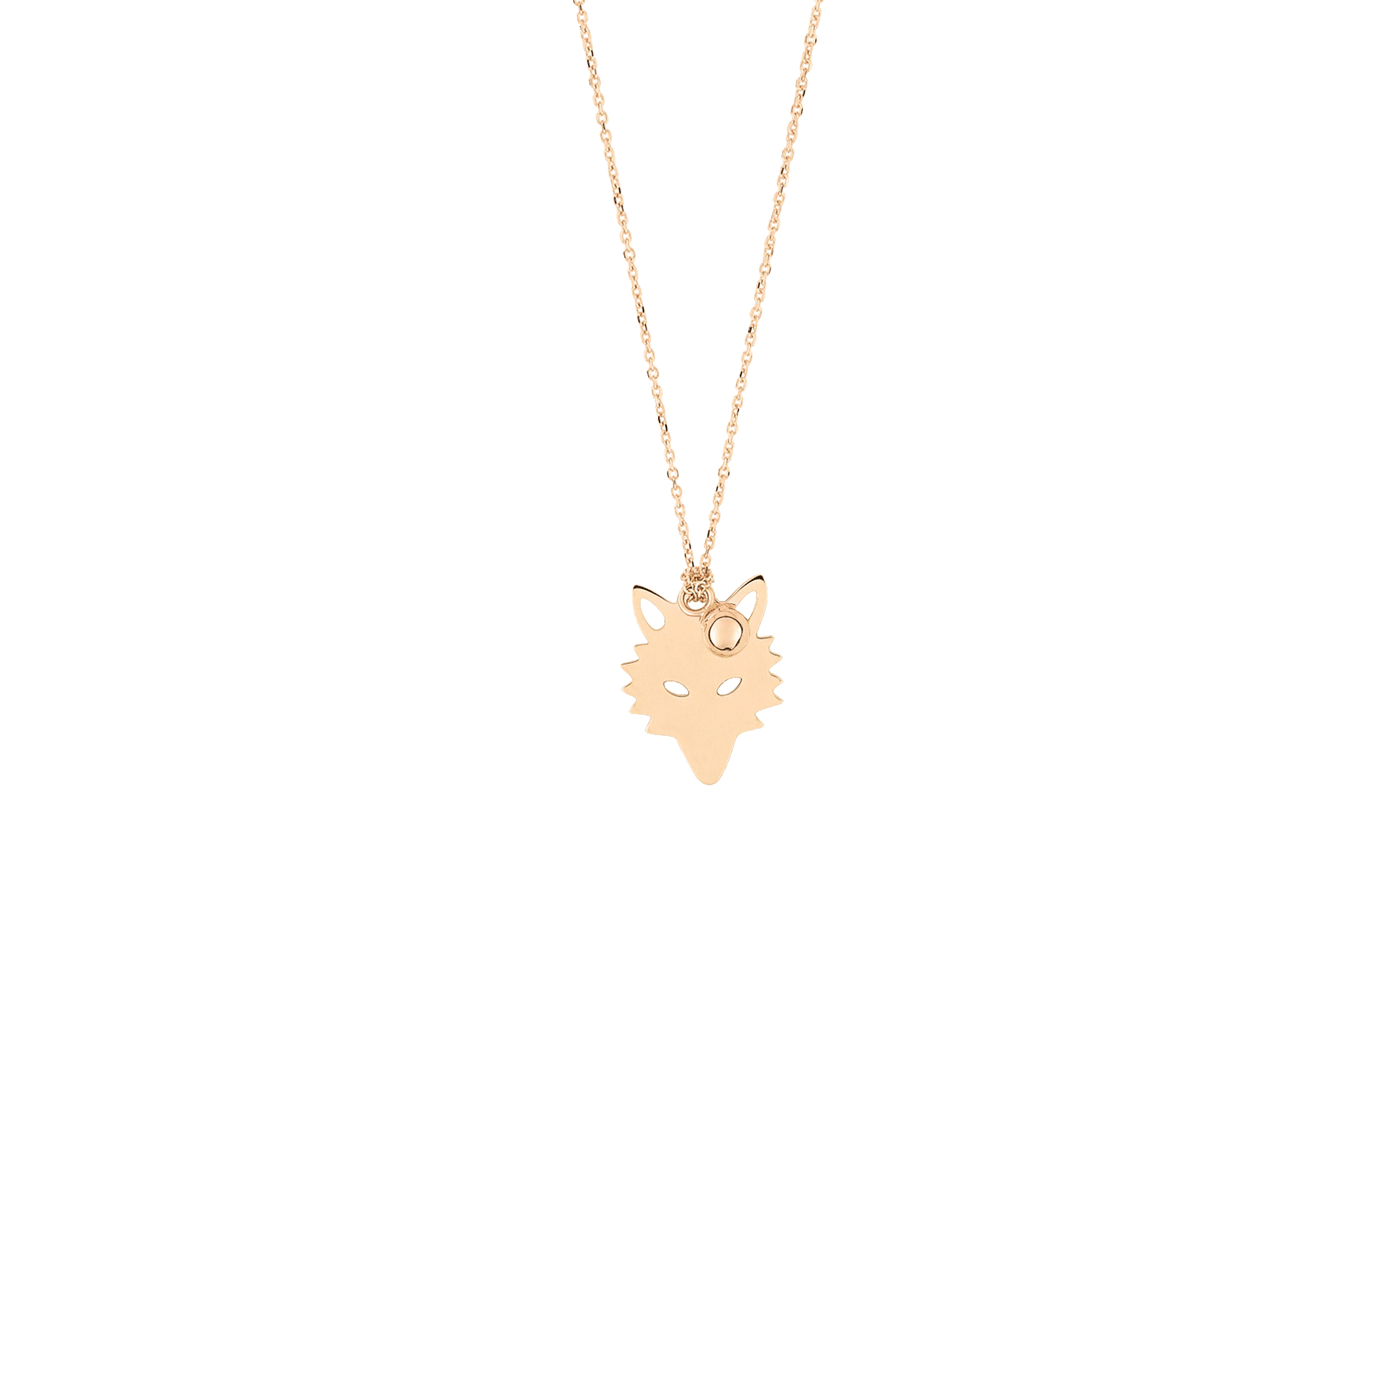 Collier Ginette NY Little Wolf et Perle en or rose, collier - Lepage